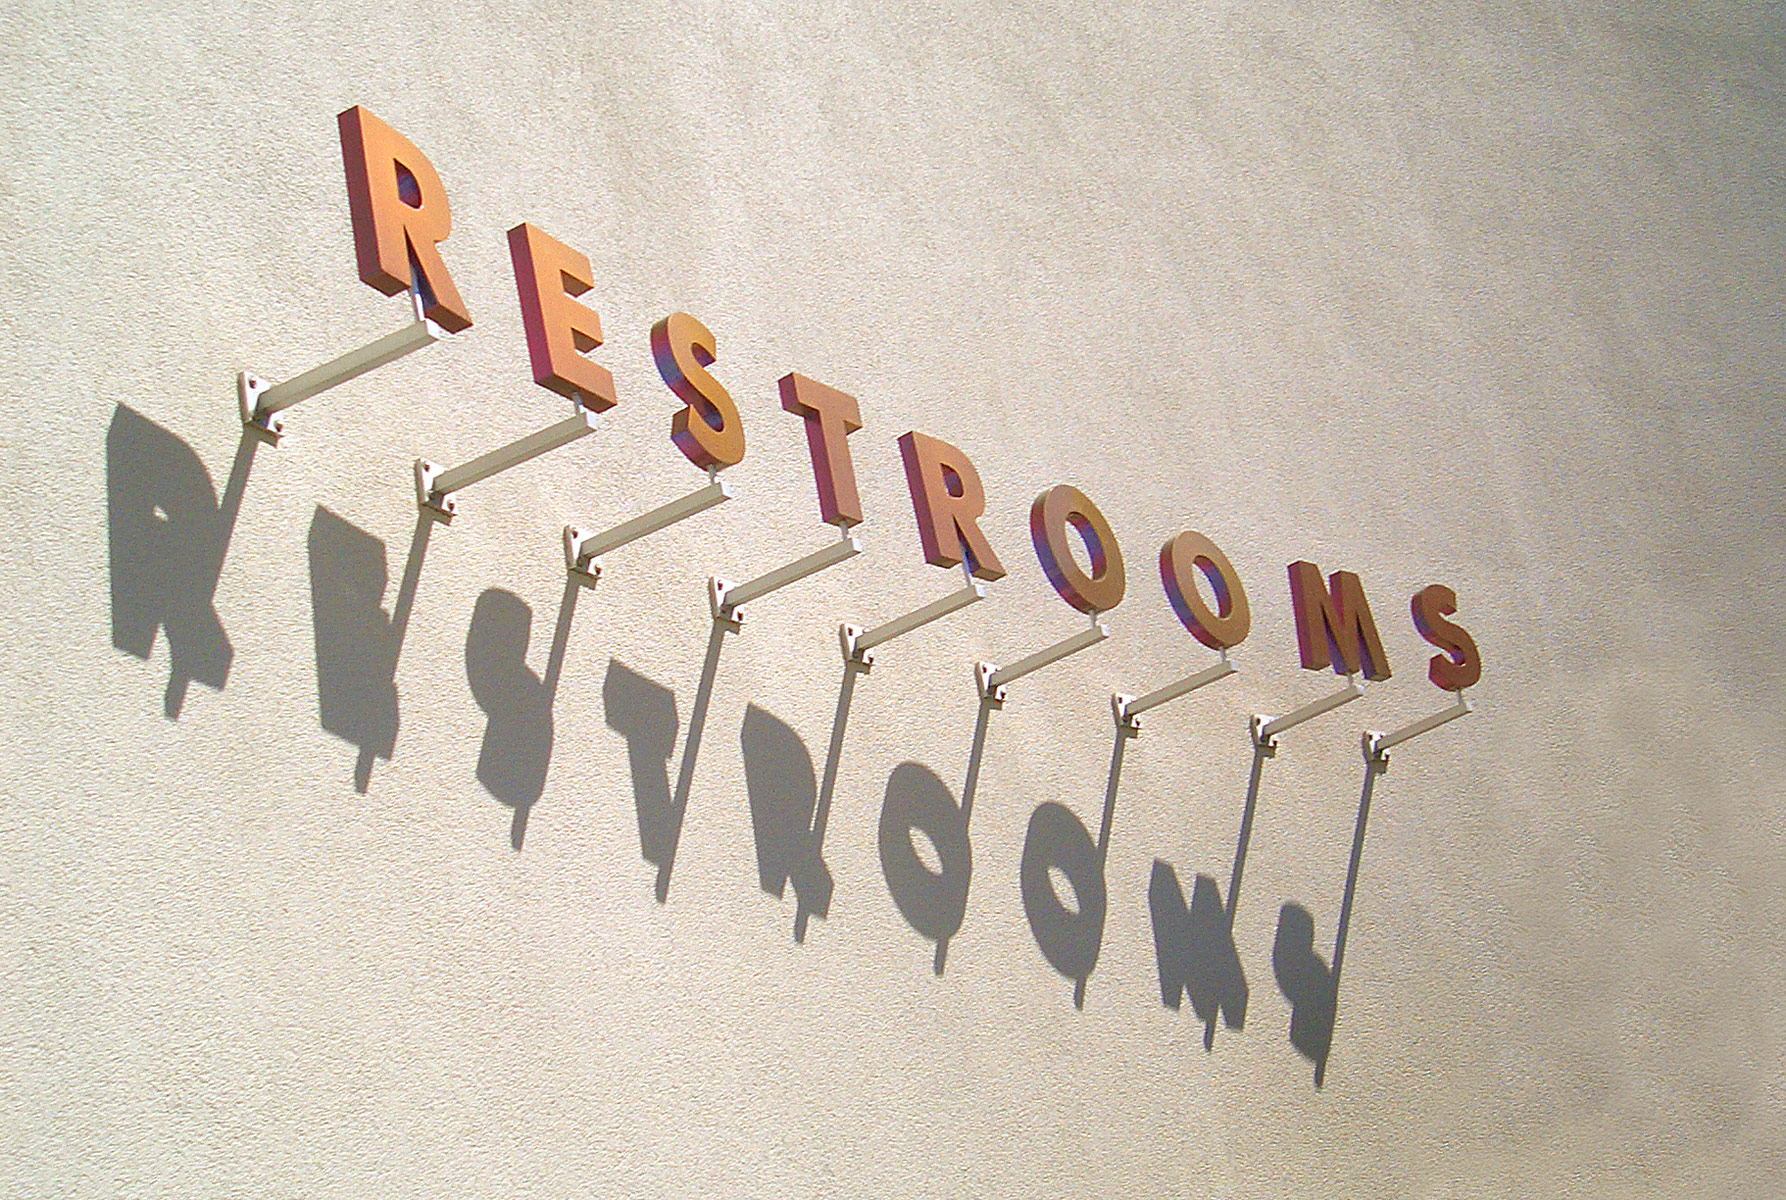 Restrooms Sign, Florida